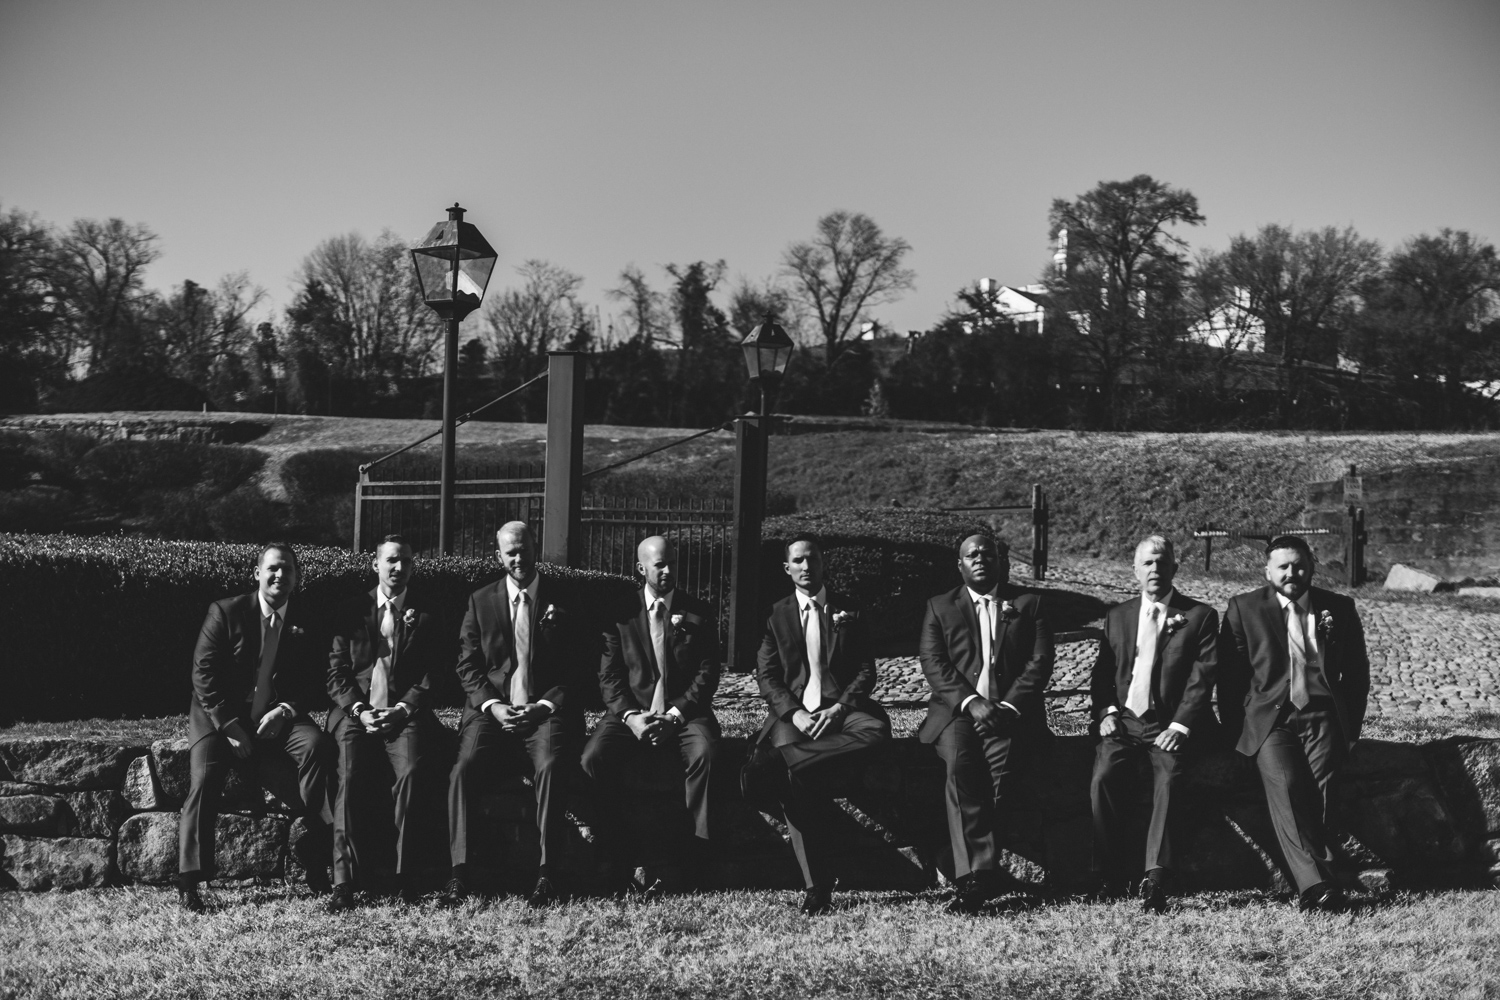 021 - groom with groomsmen black and white.jpg